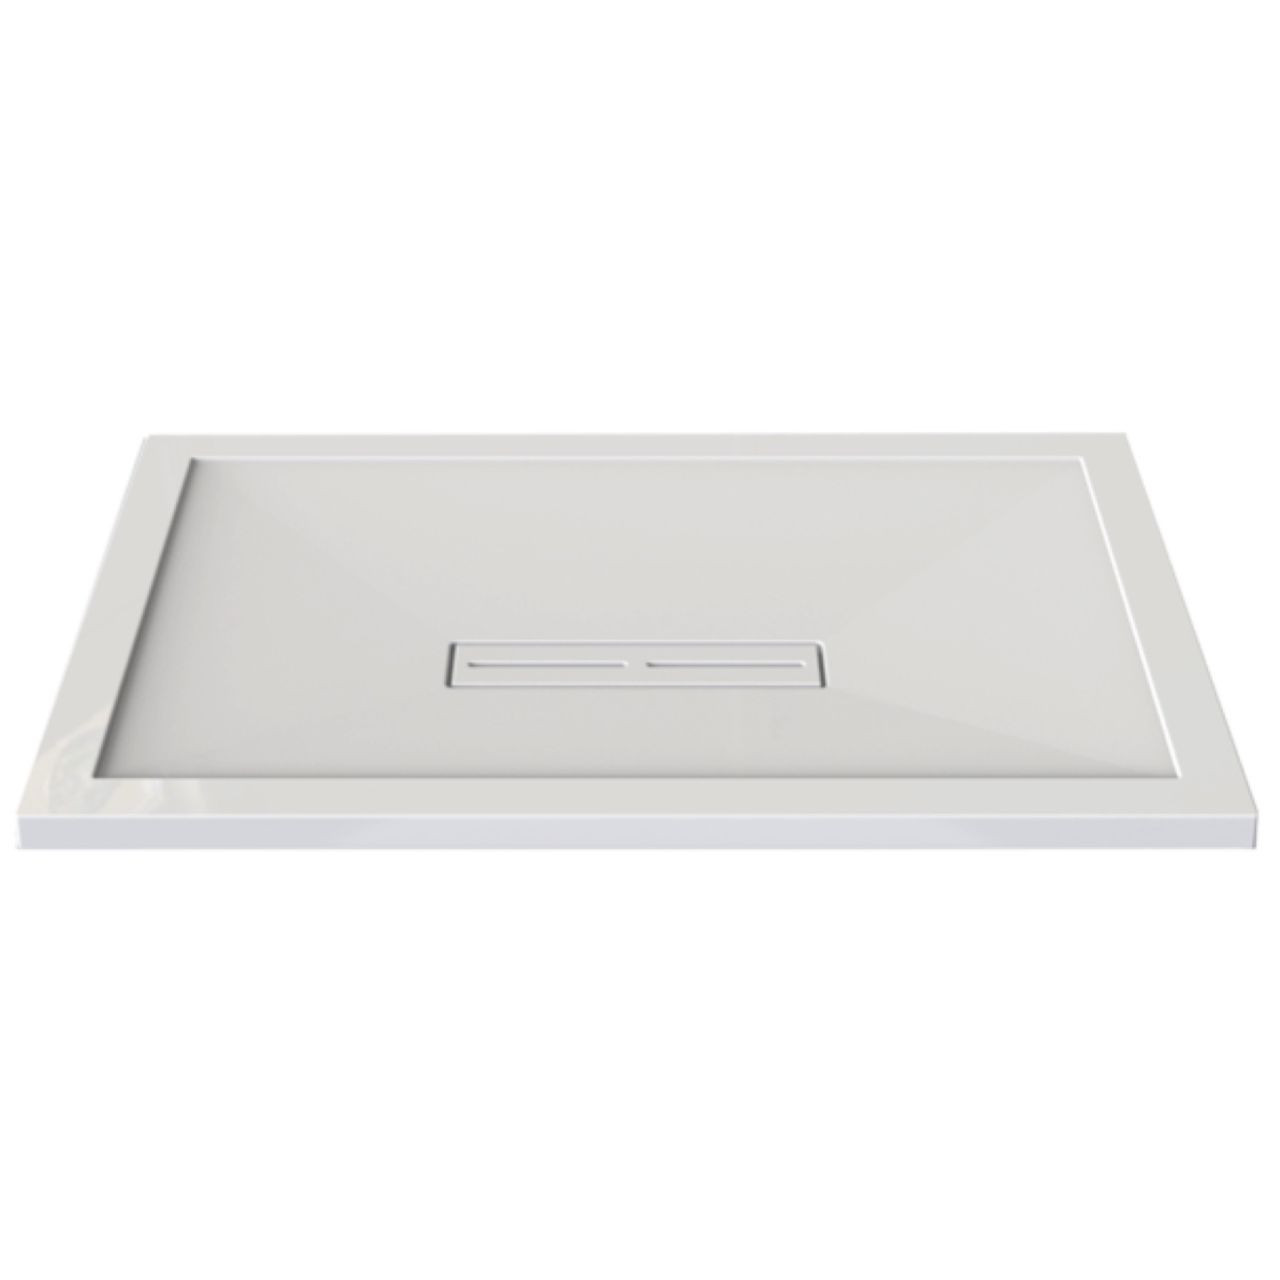 Kudos Connect2 1400mm x 800mm x 35mm Rectangular Shower Tray - C2T14080